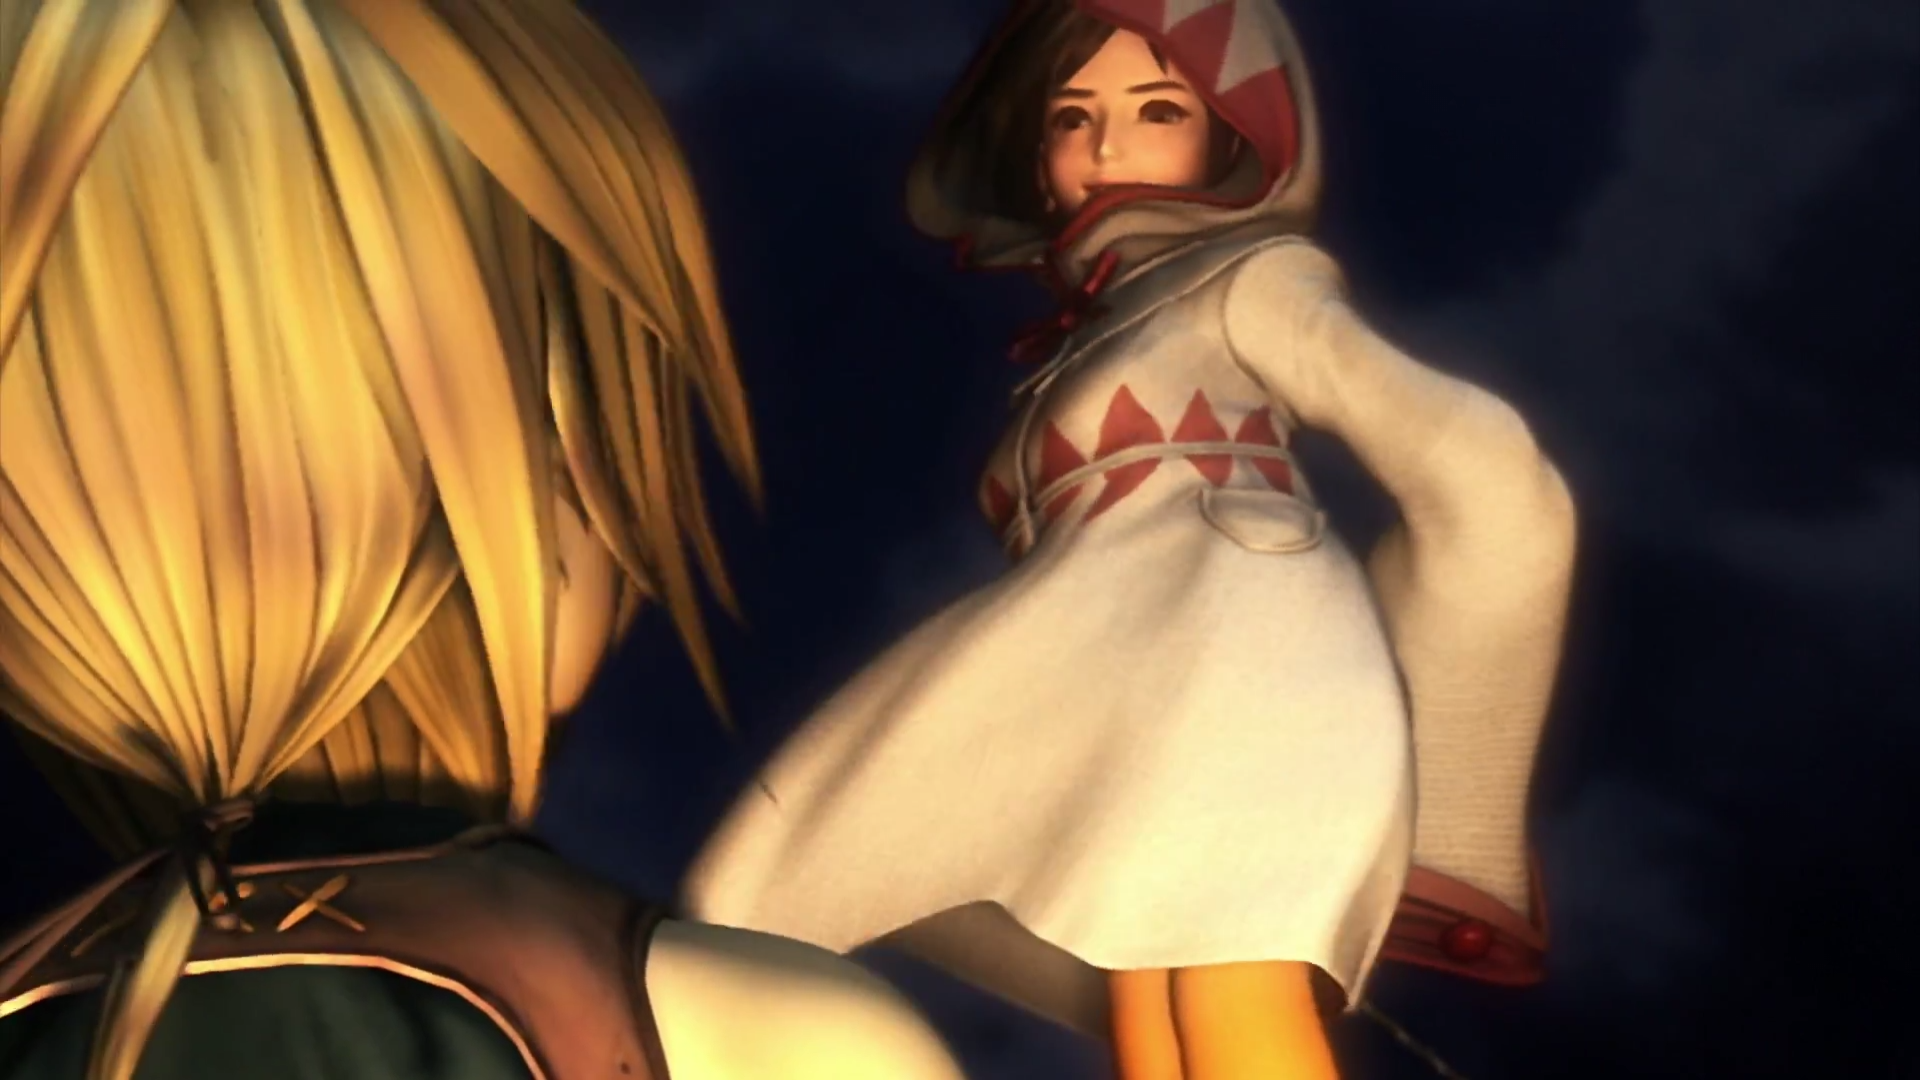 Final Fantasy Ix Arrives On Playstation 4 Today Includes Trophy